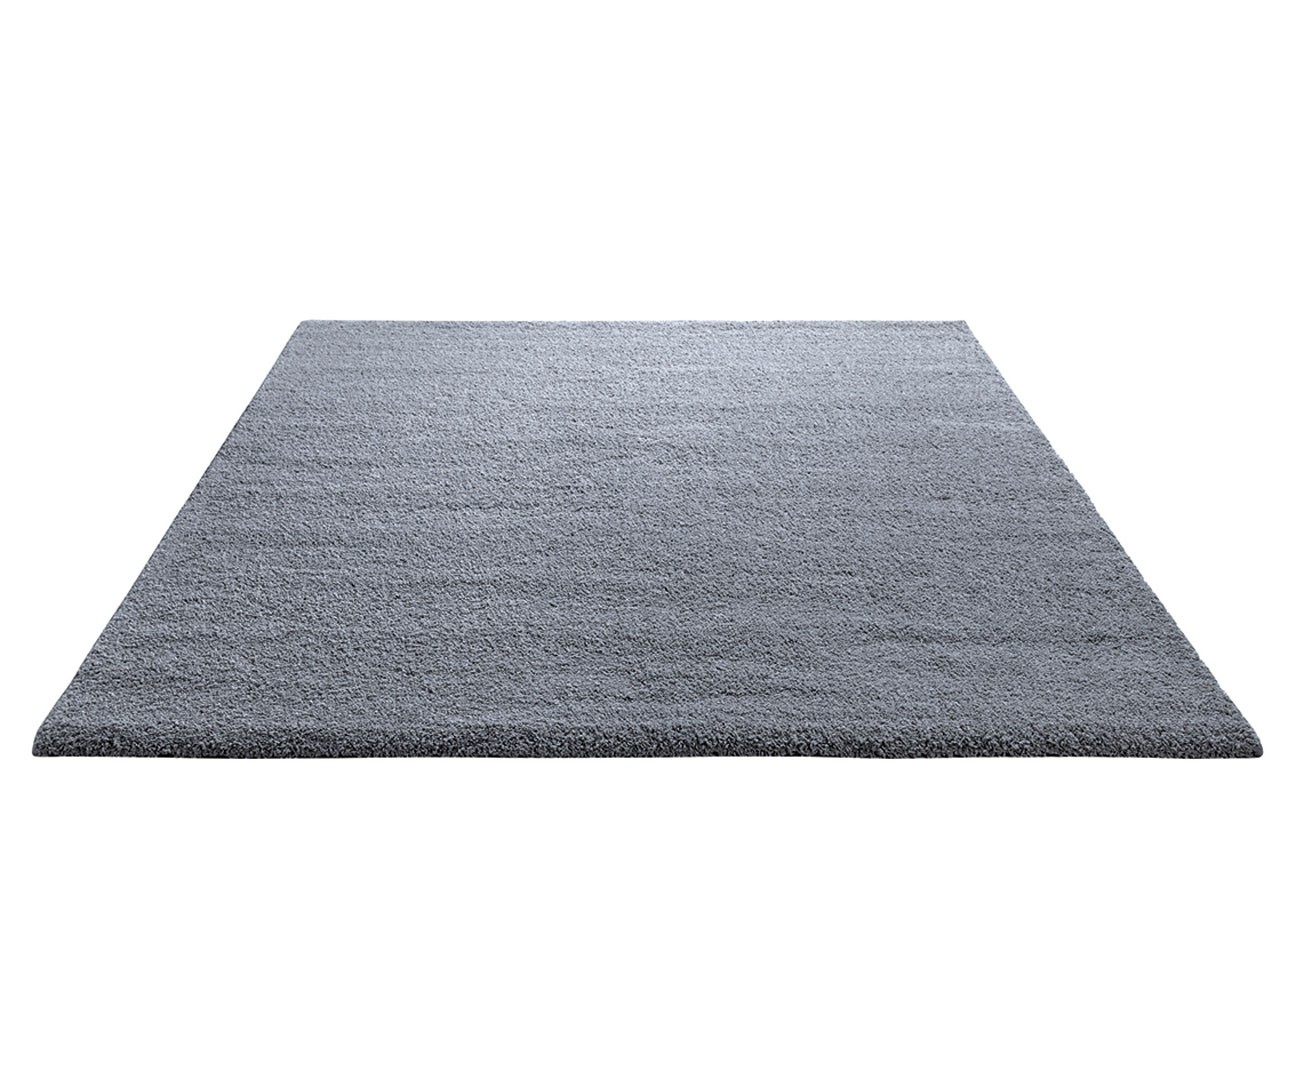 tapis gris jaune carrelage design tapis jaune et gris moderne design tapis d coratif et doux. Black Bedroom Furniture Sets. Home Design Ideas